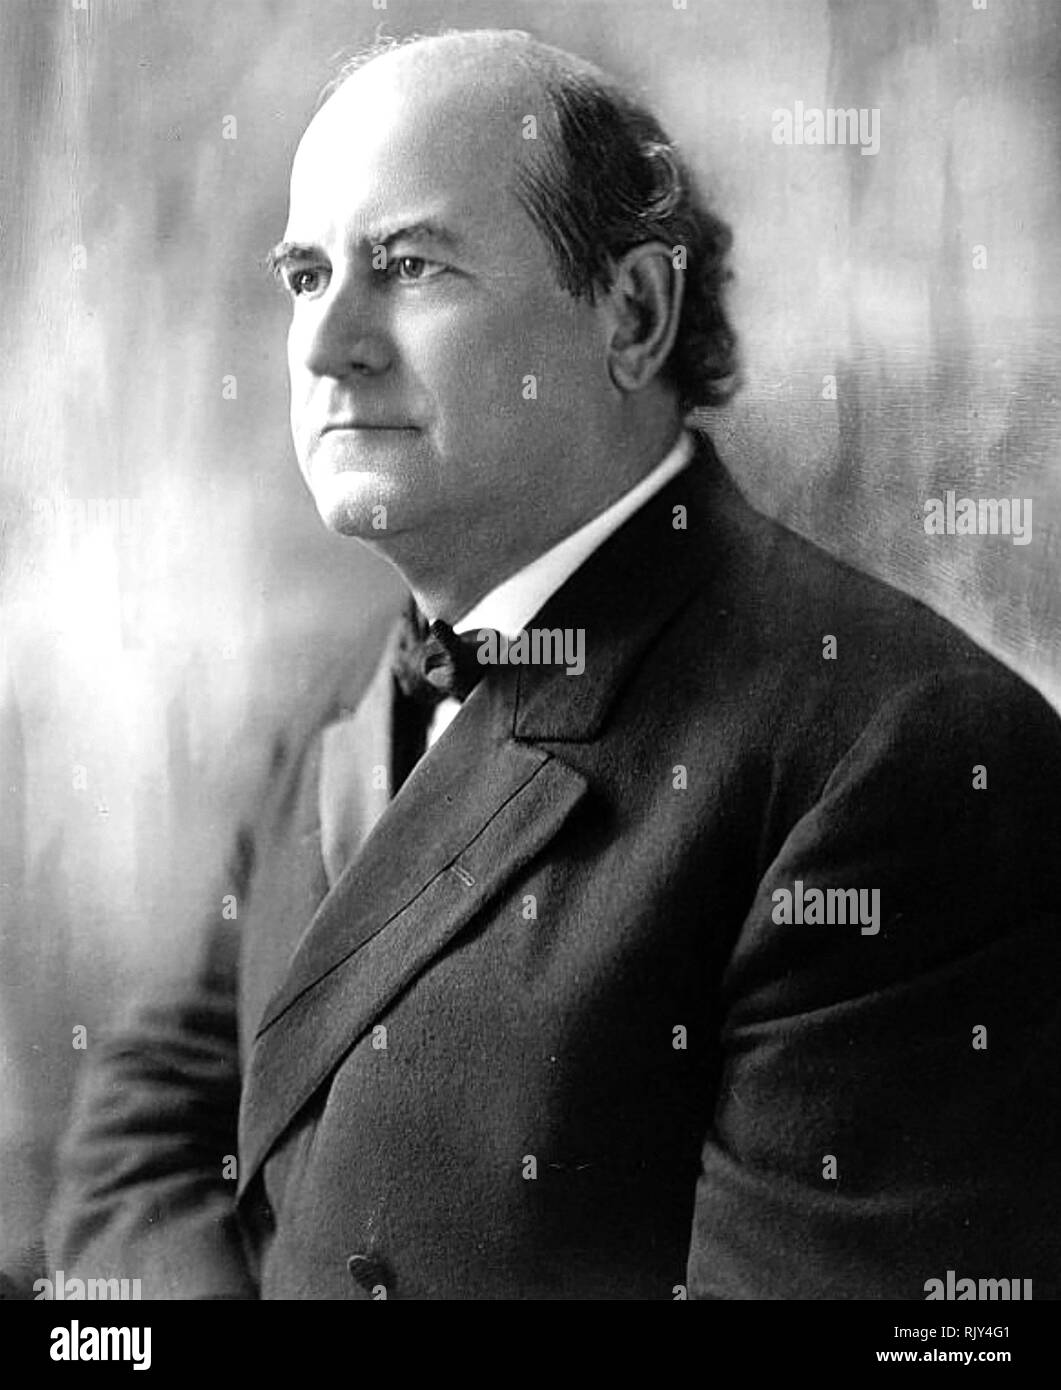 WILLIAM JENNINGS BRYAN (1860-1925) American Democratic politician - Stock Image